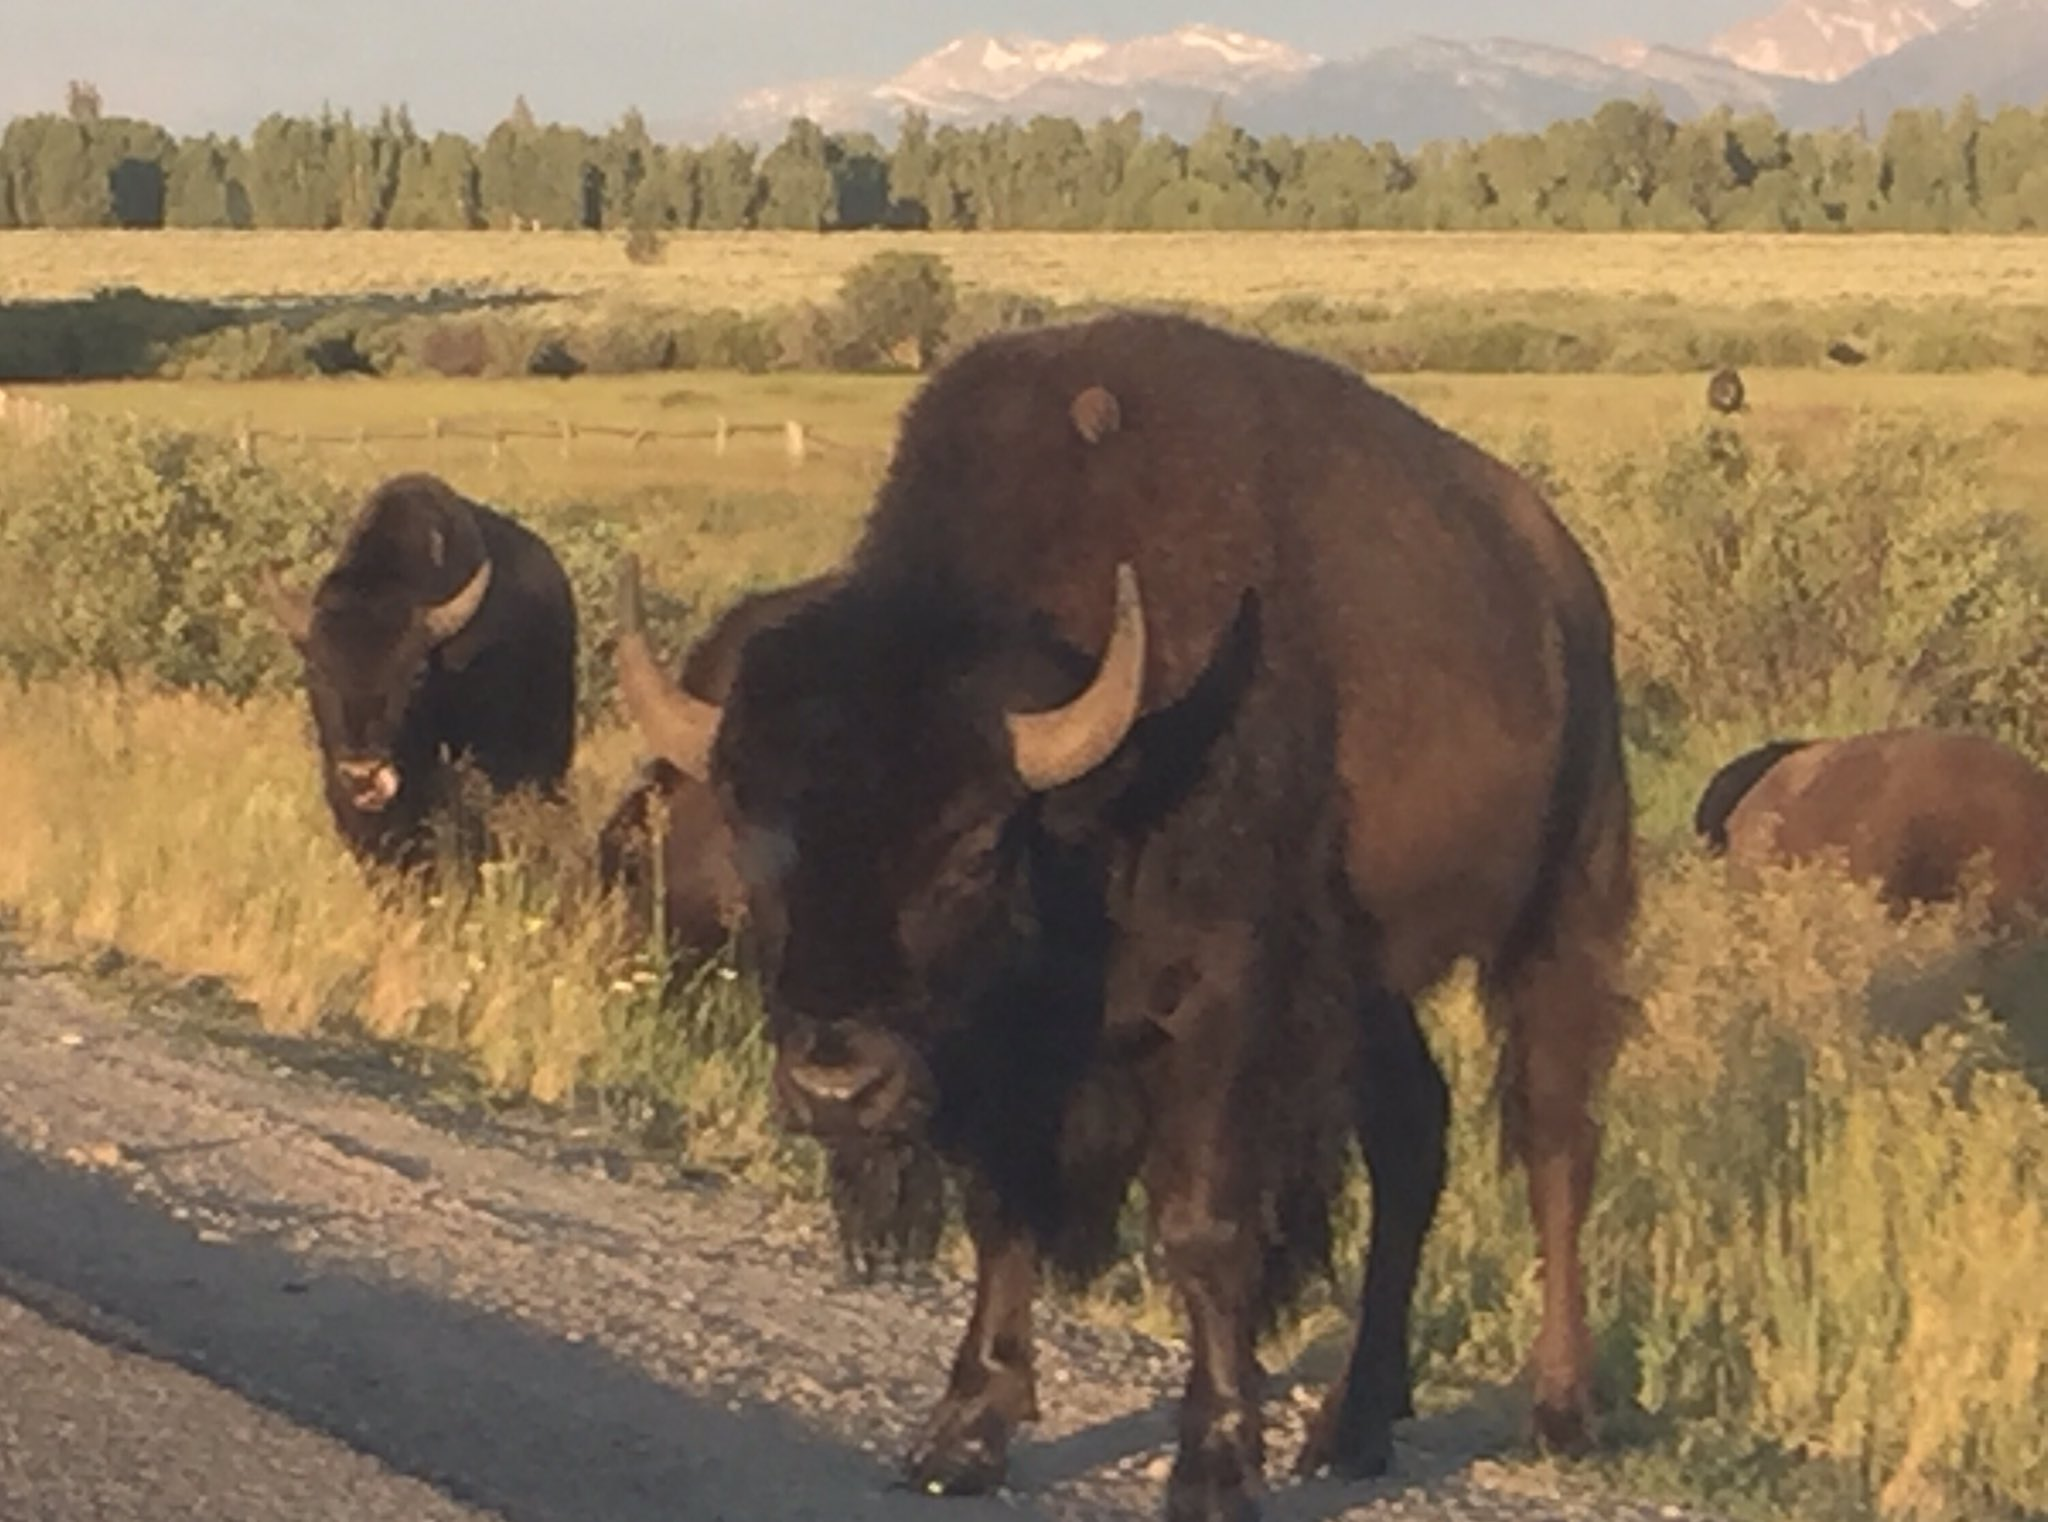 Hi, Jenna signing in from the Mitten State, just returned from vacationing near these beautiful bison! #Wyoming #GrandTetons #MacroSW https://t.co/oM7m8aqmUS